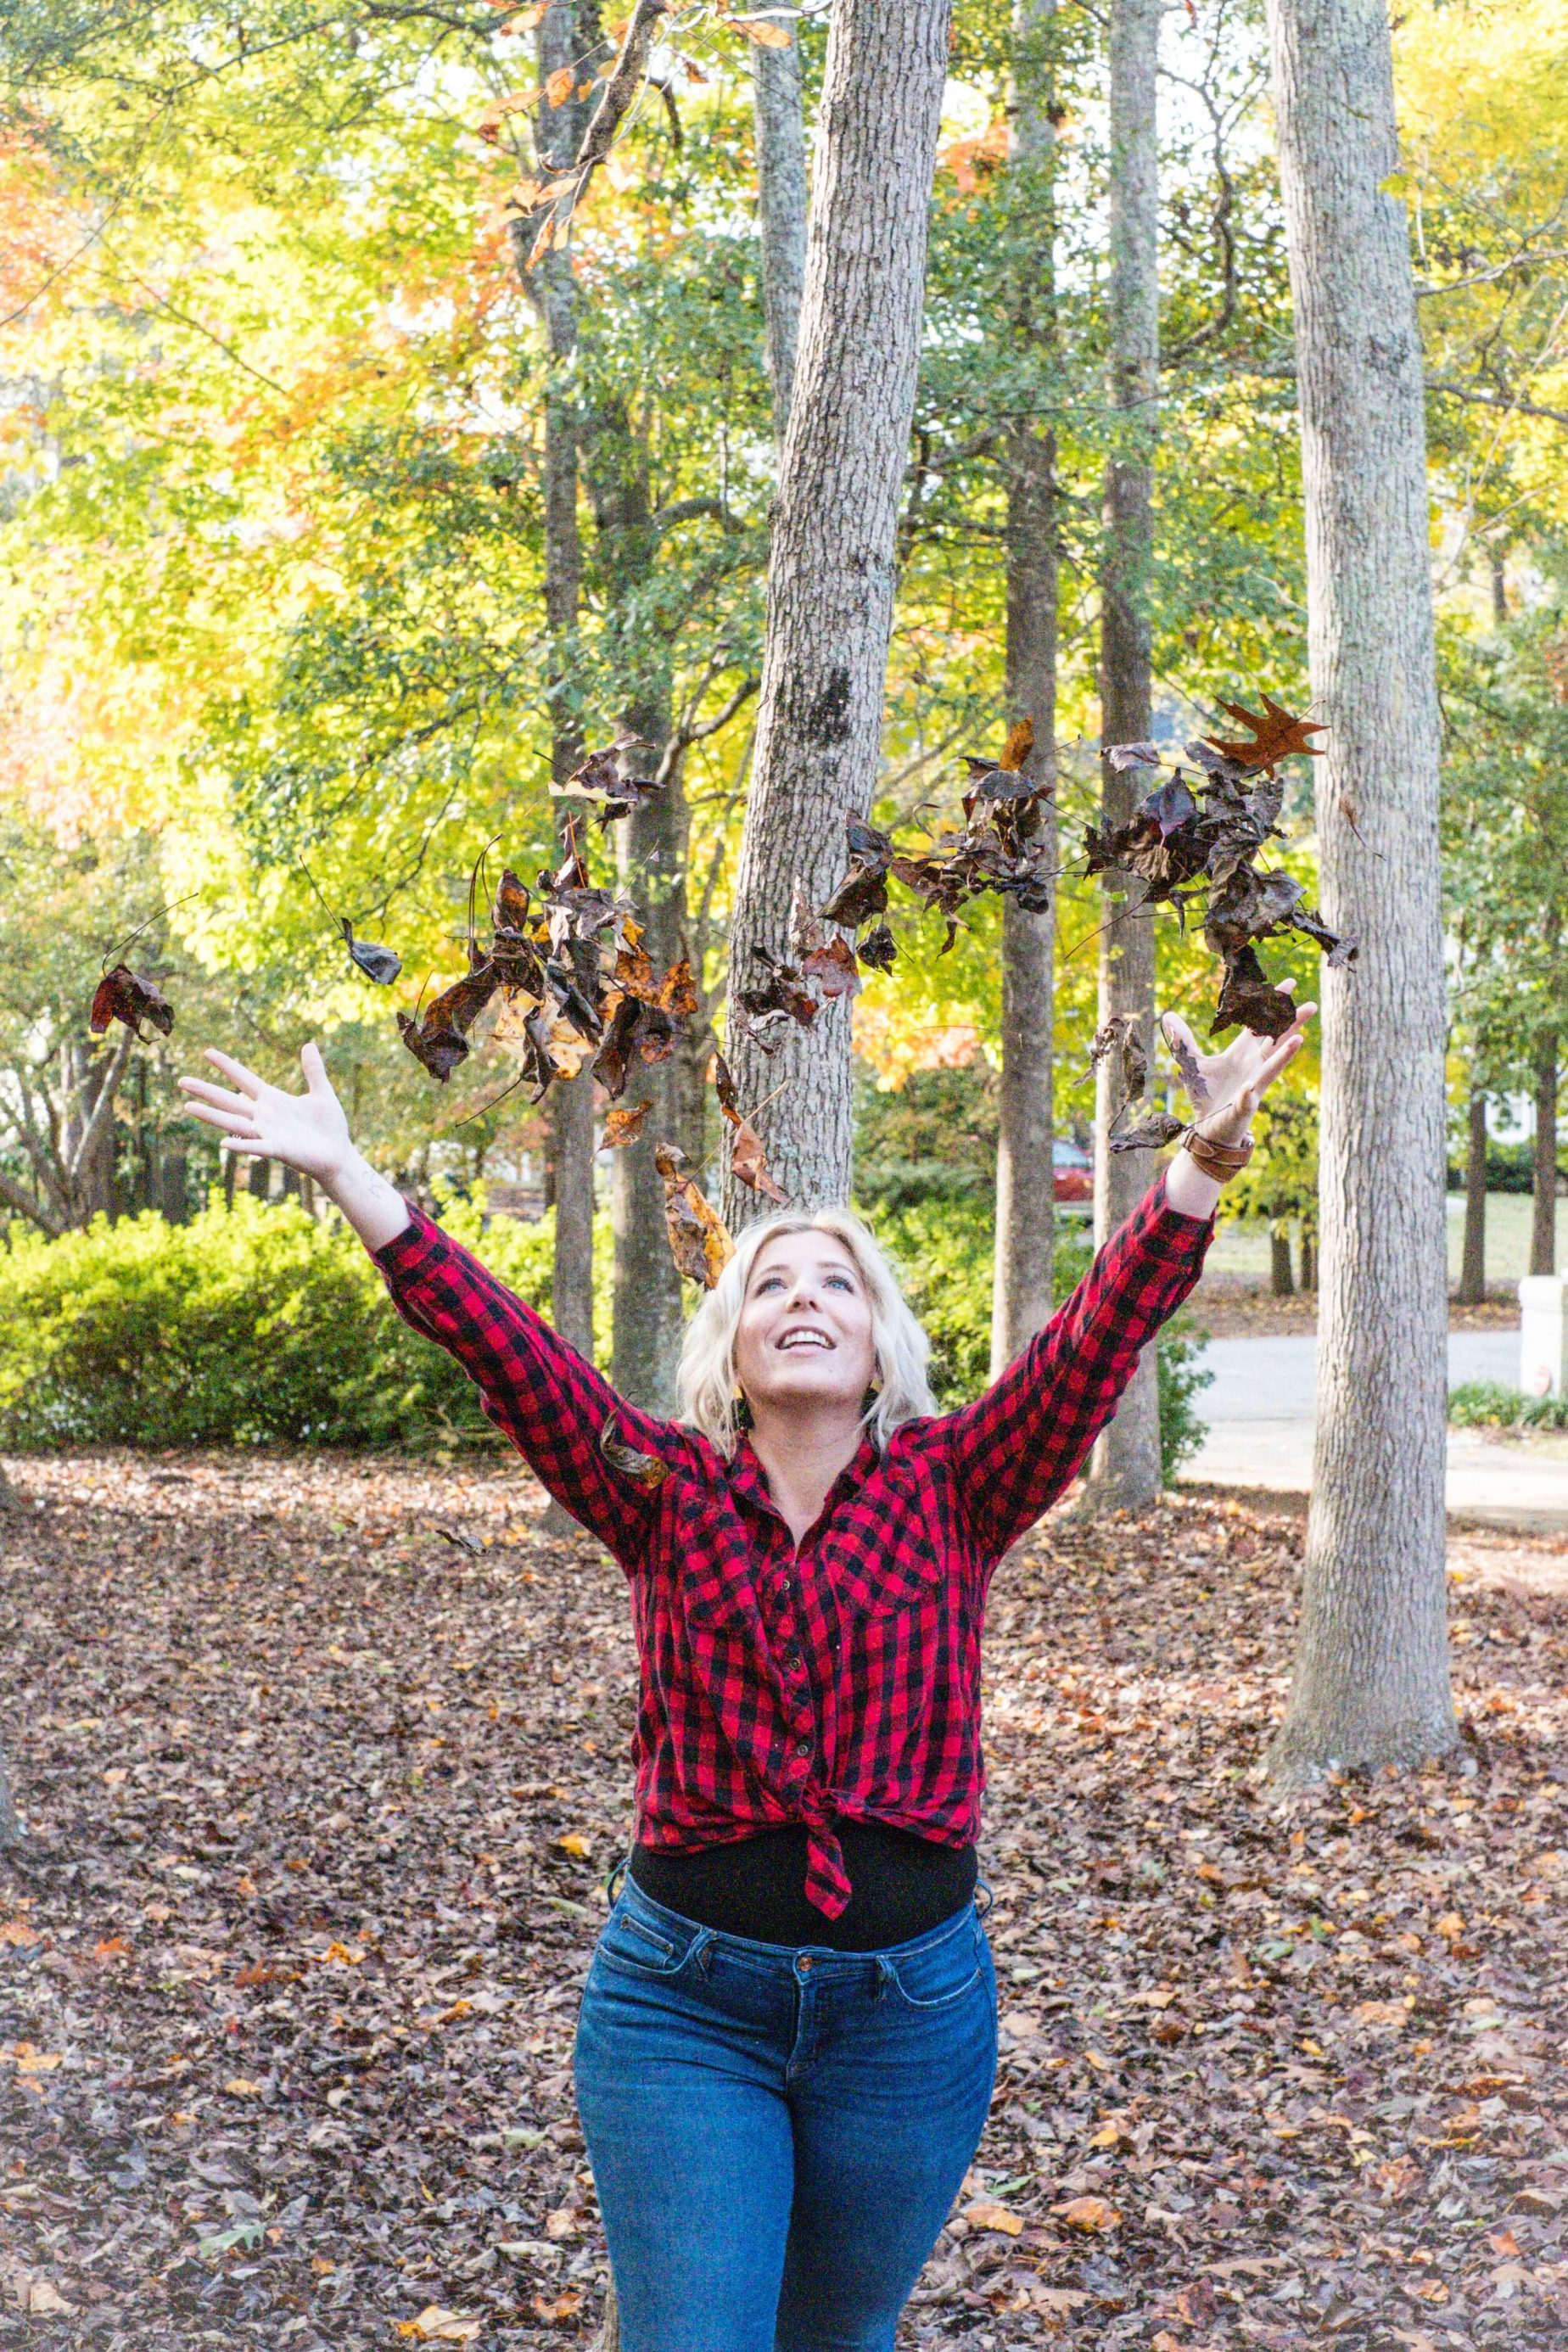 5 Tips To Help You Combat Bloating #whatsavvysaid #bloating #wellness #healthtips #wellnessblogger #fallphotos